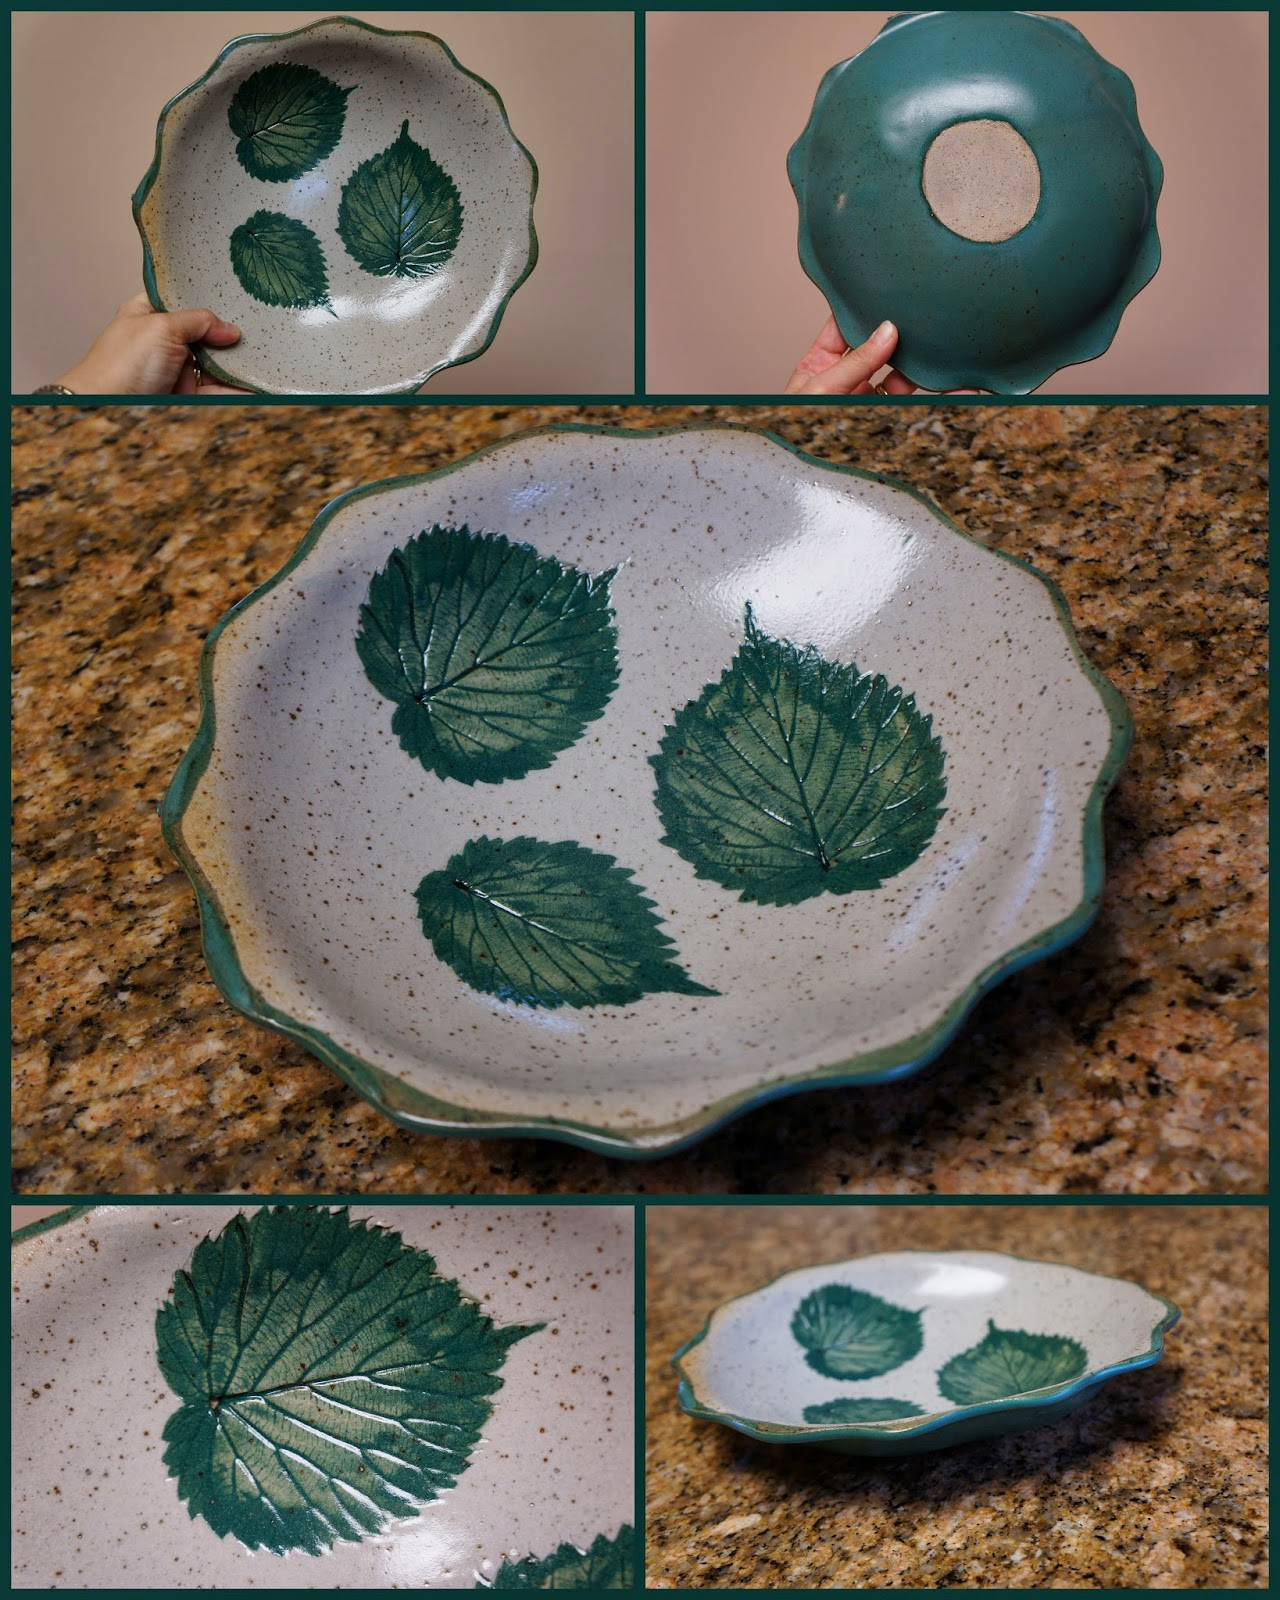 Unique handmade pottery / stoneware dish with stamped leaf design.